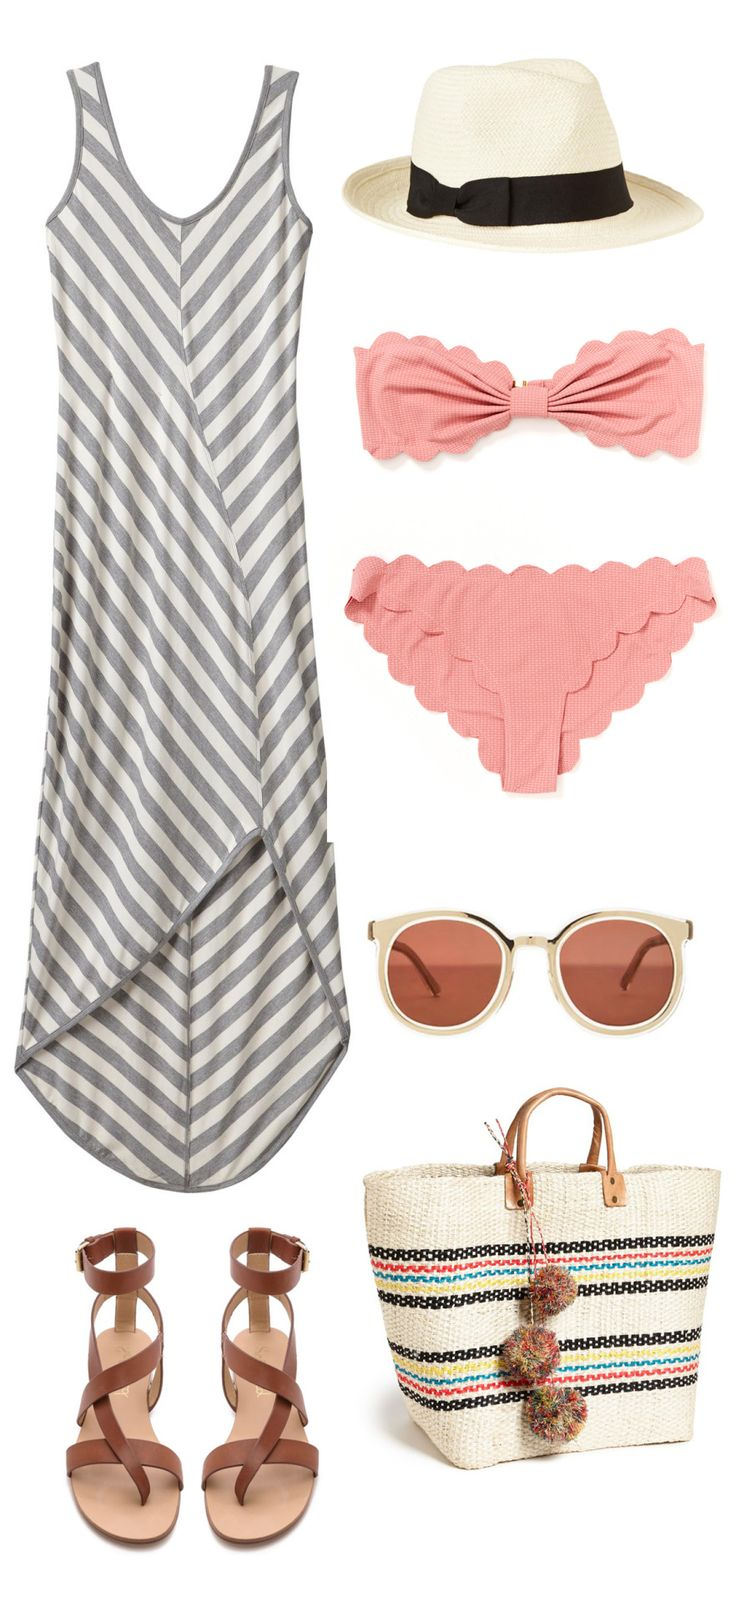 Shop OutfitStripes Maxi // Fedora // Scalloped Bikini here and here // Leather Sandals // Sunglasses // Beach Tote